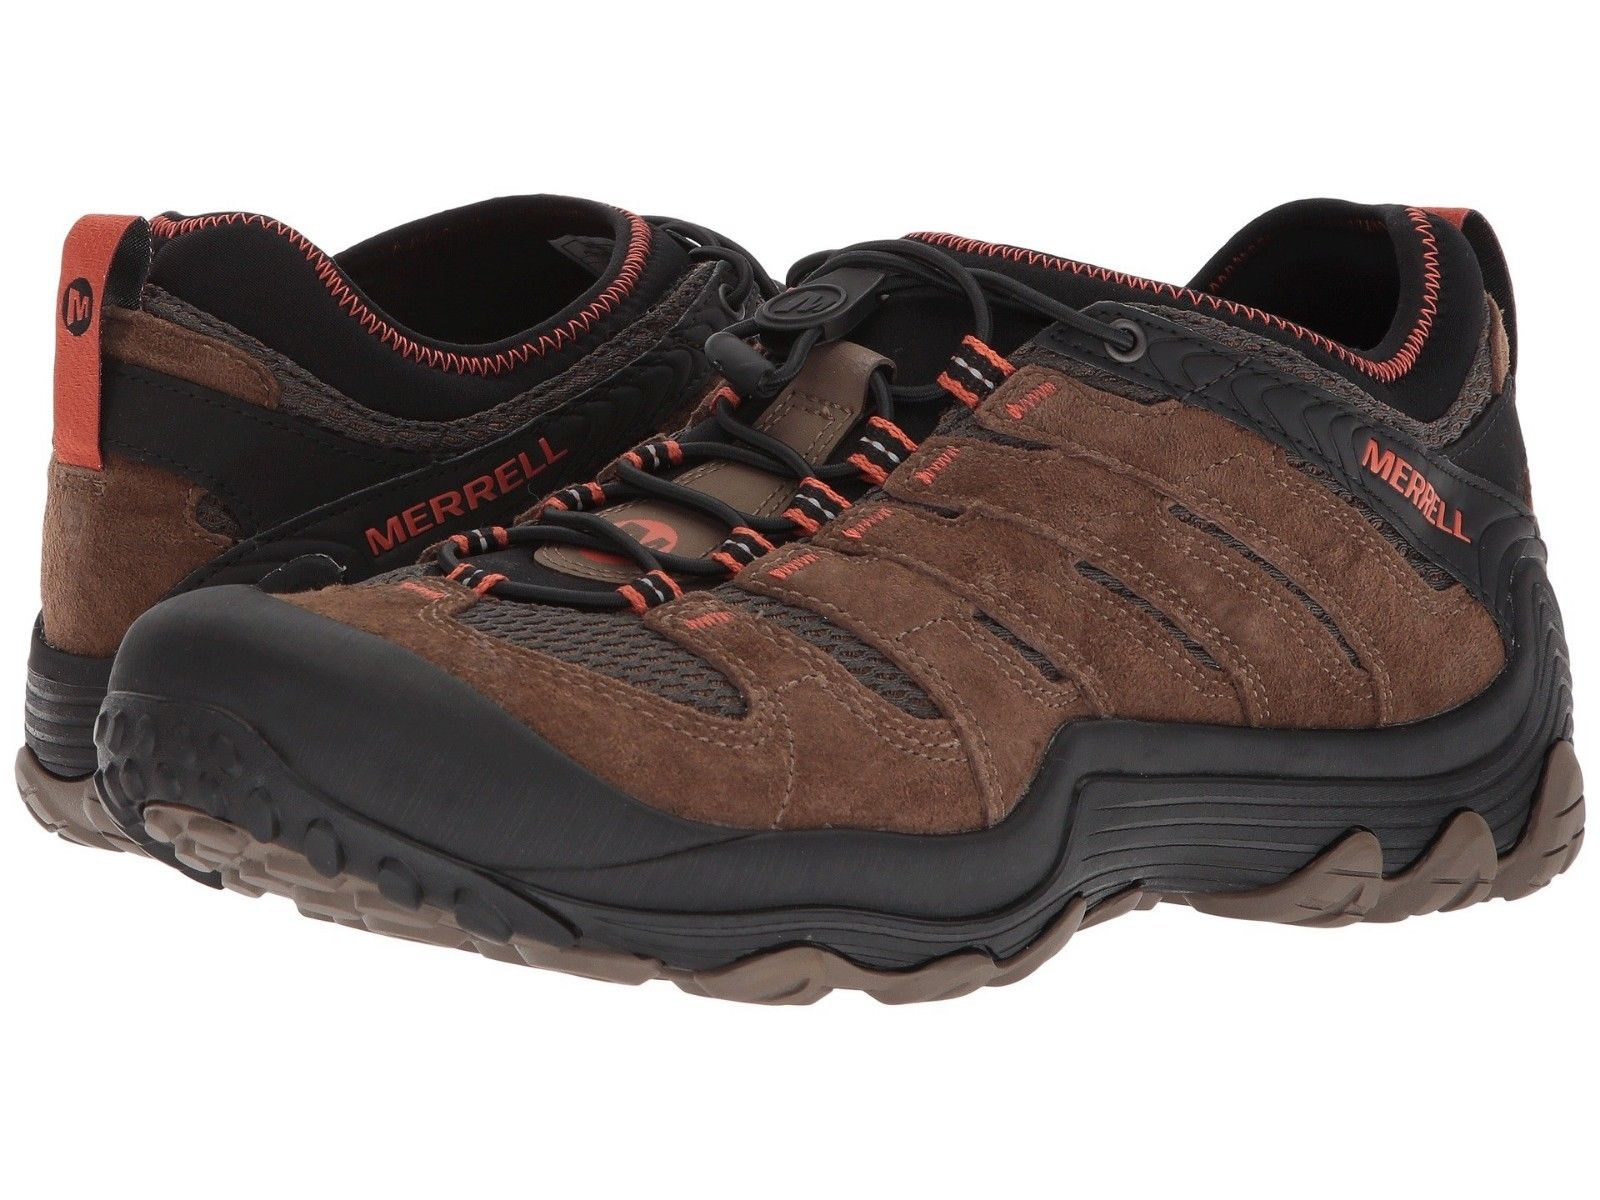 d1bdcf1c Details about Merrell Men's Chameleon 7 Stretch Trail Shoe Size US 8 D / EU  41.5 NIB